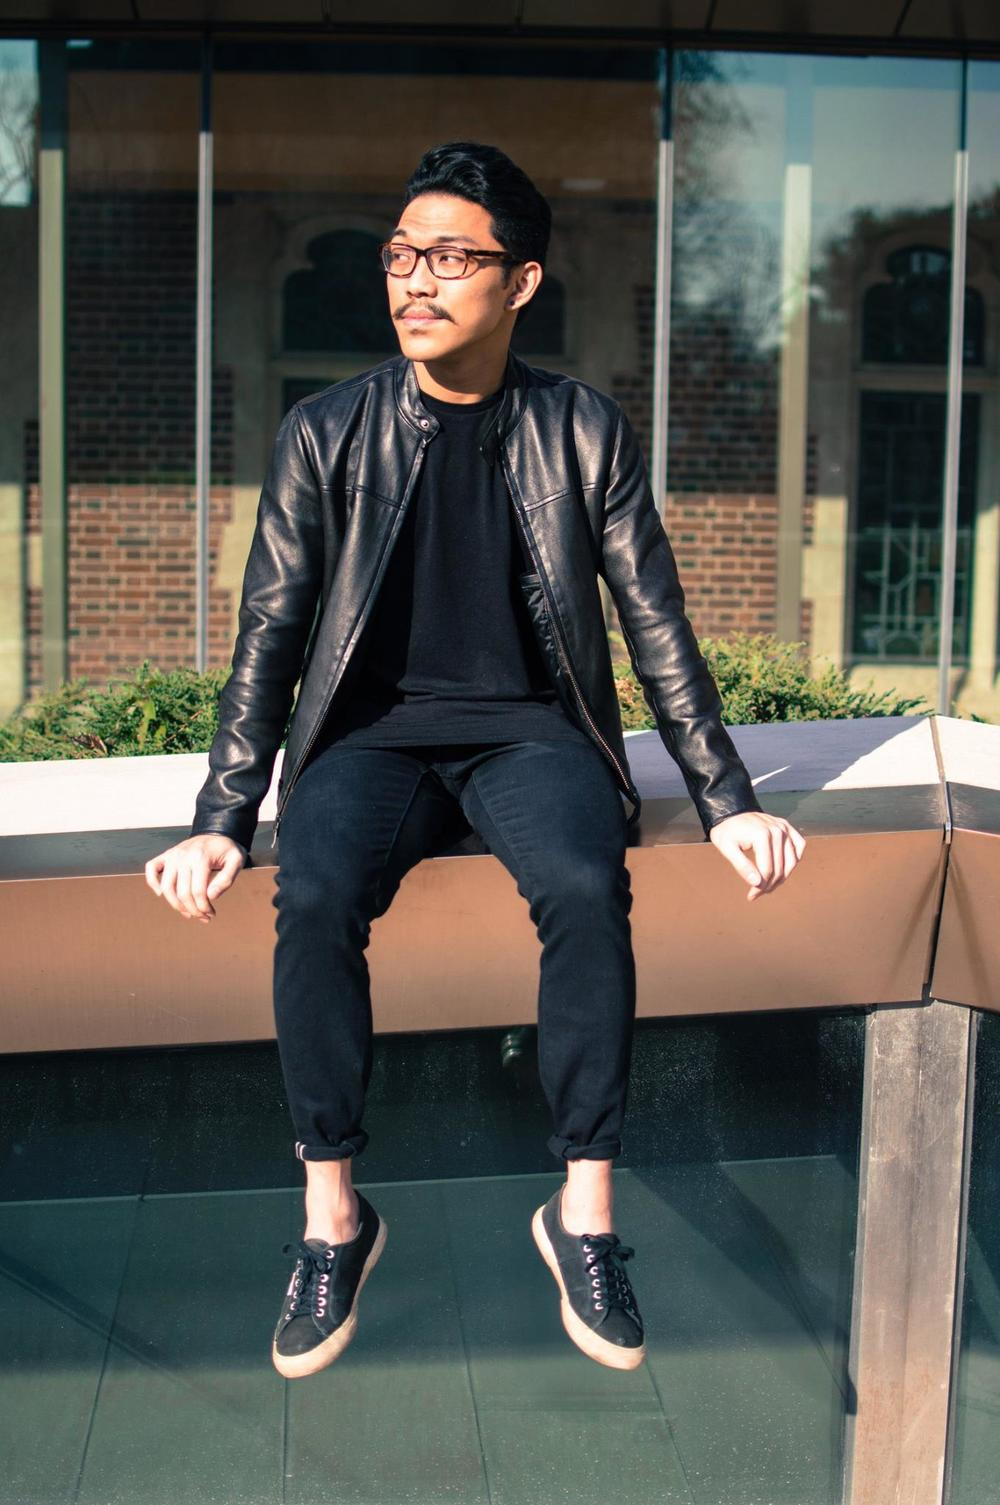 Wearing: New Look longline tee, Banana Republic leather jacket, Uniqlo jeans, Superga sneakers